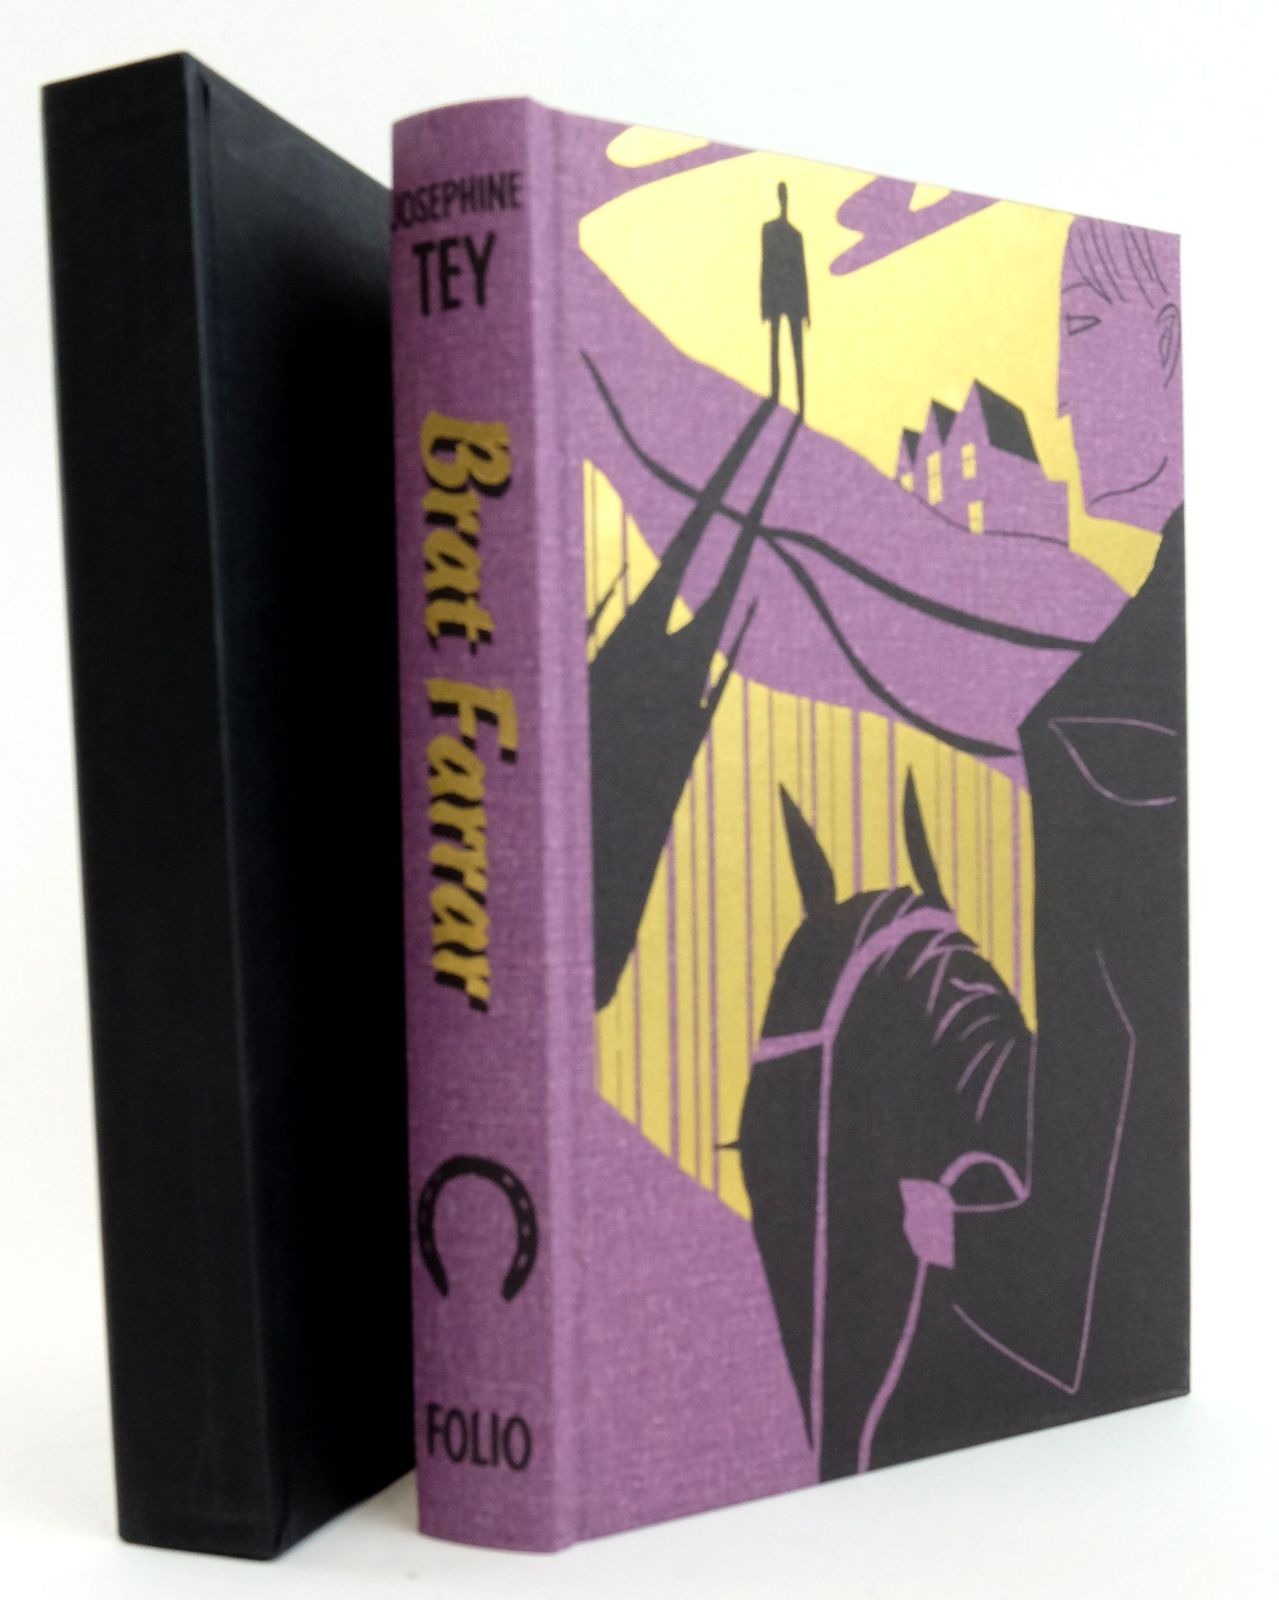 Photo of BRAT FARRAR written by Tey, Josephine Rendell, Ruth illustrated by Allen, A. Richard published by Folio Society (STOCK CODE: 1819994)  for sale by Stella & Rose's Books